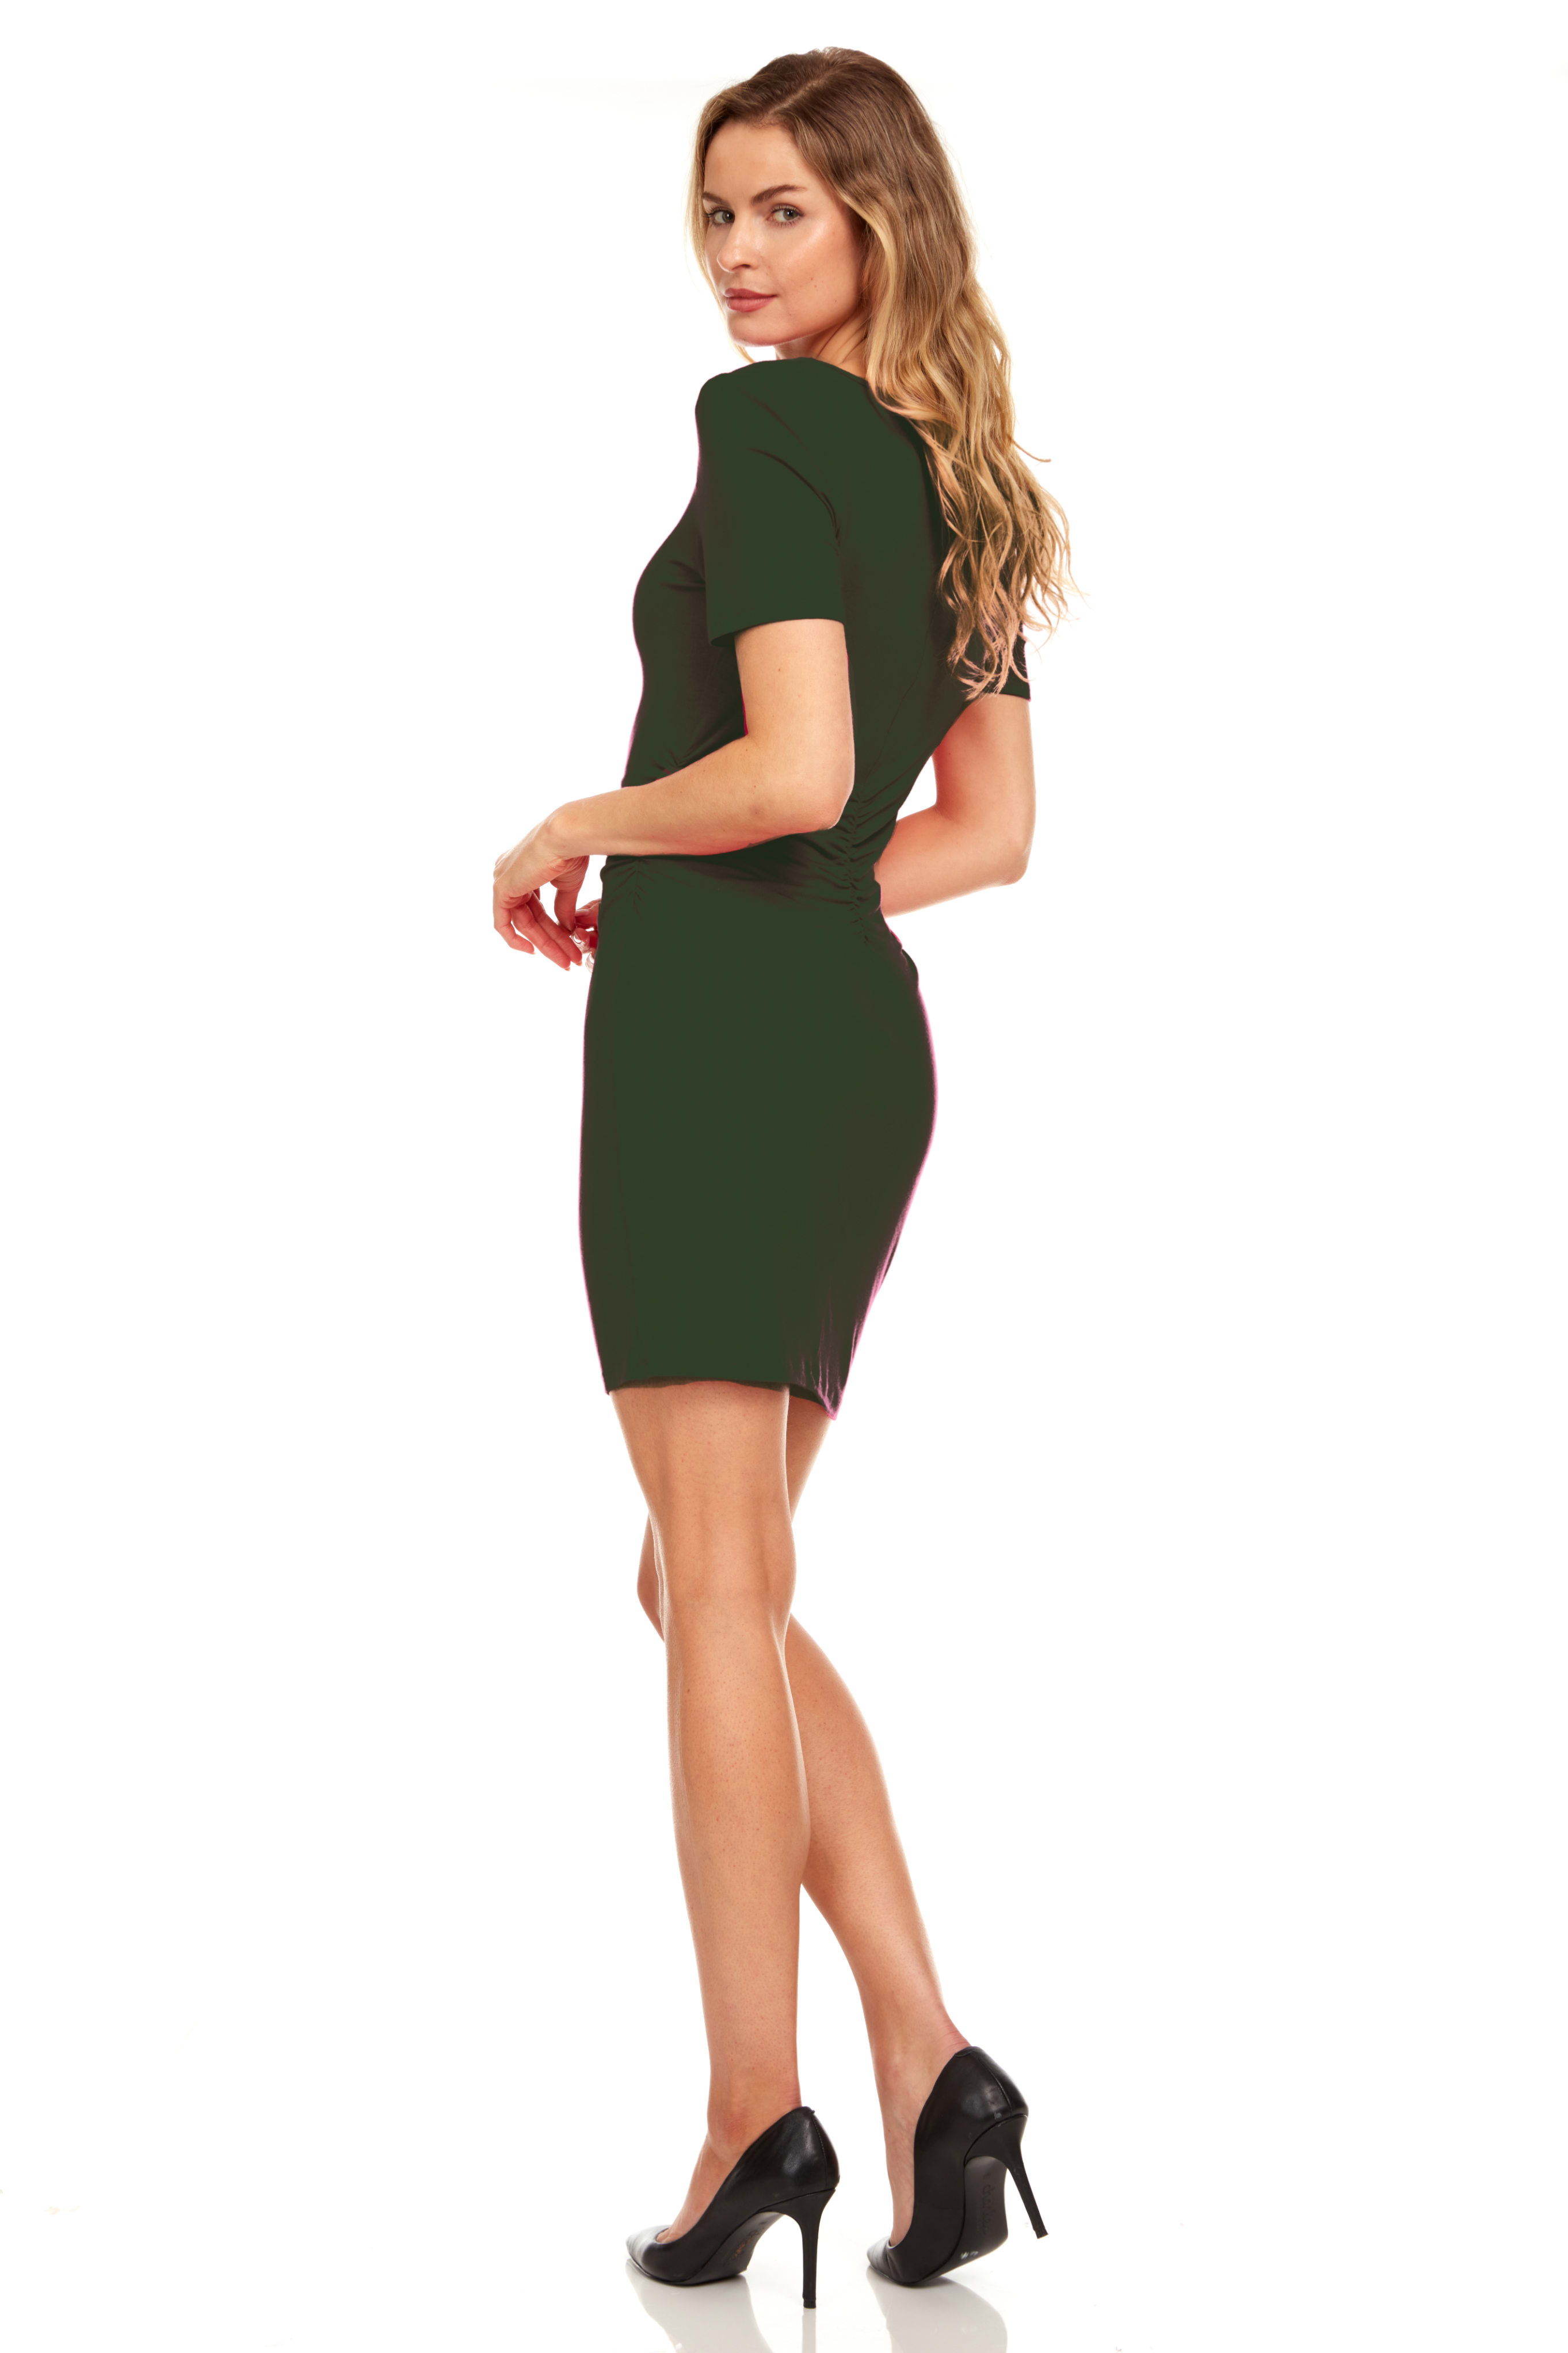 Rouched side Midi Dress with Criss-cross Detail - Olive - Back